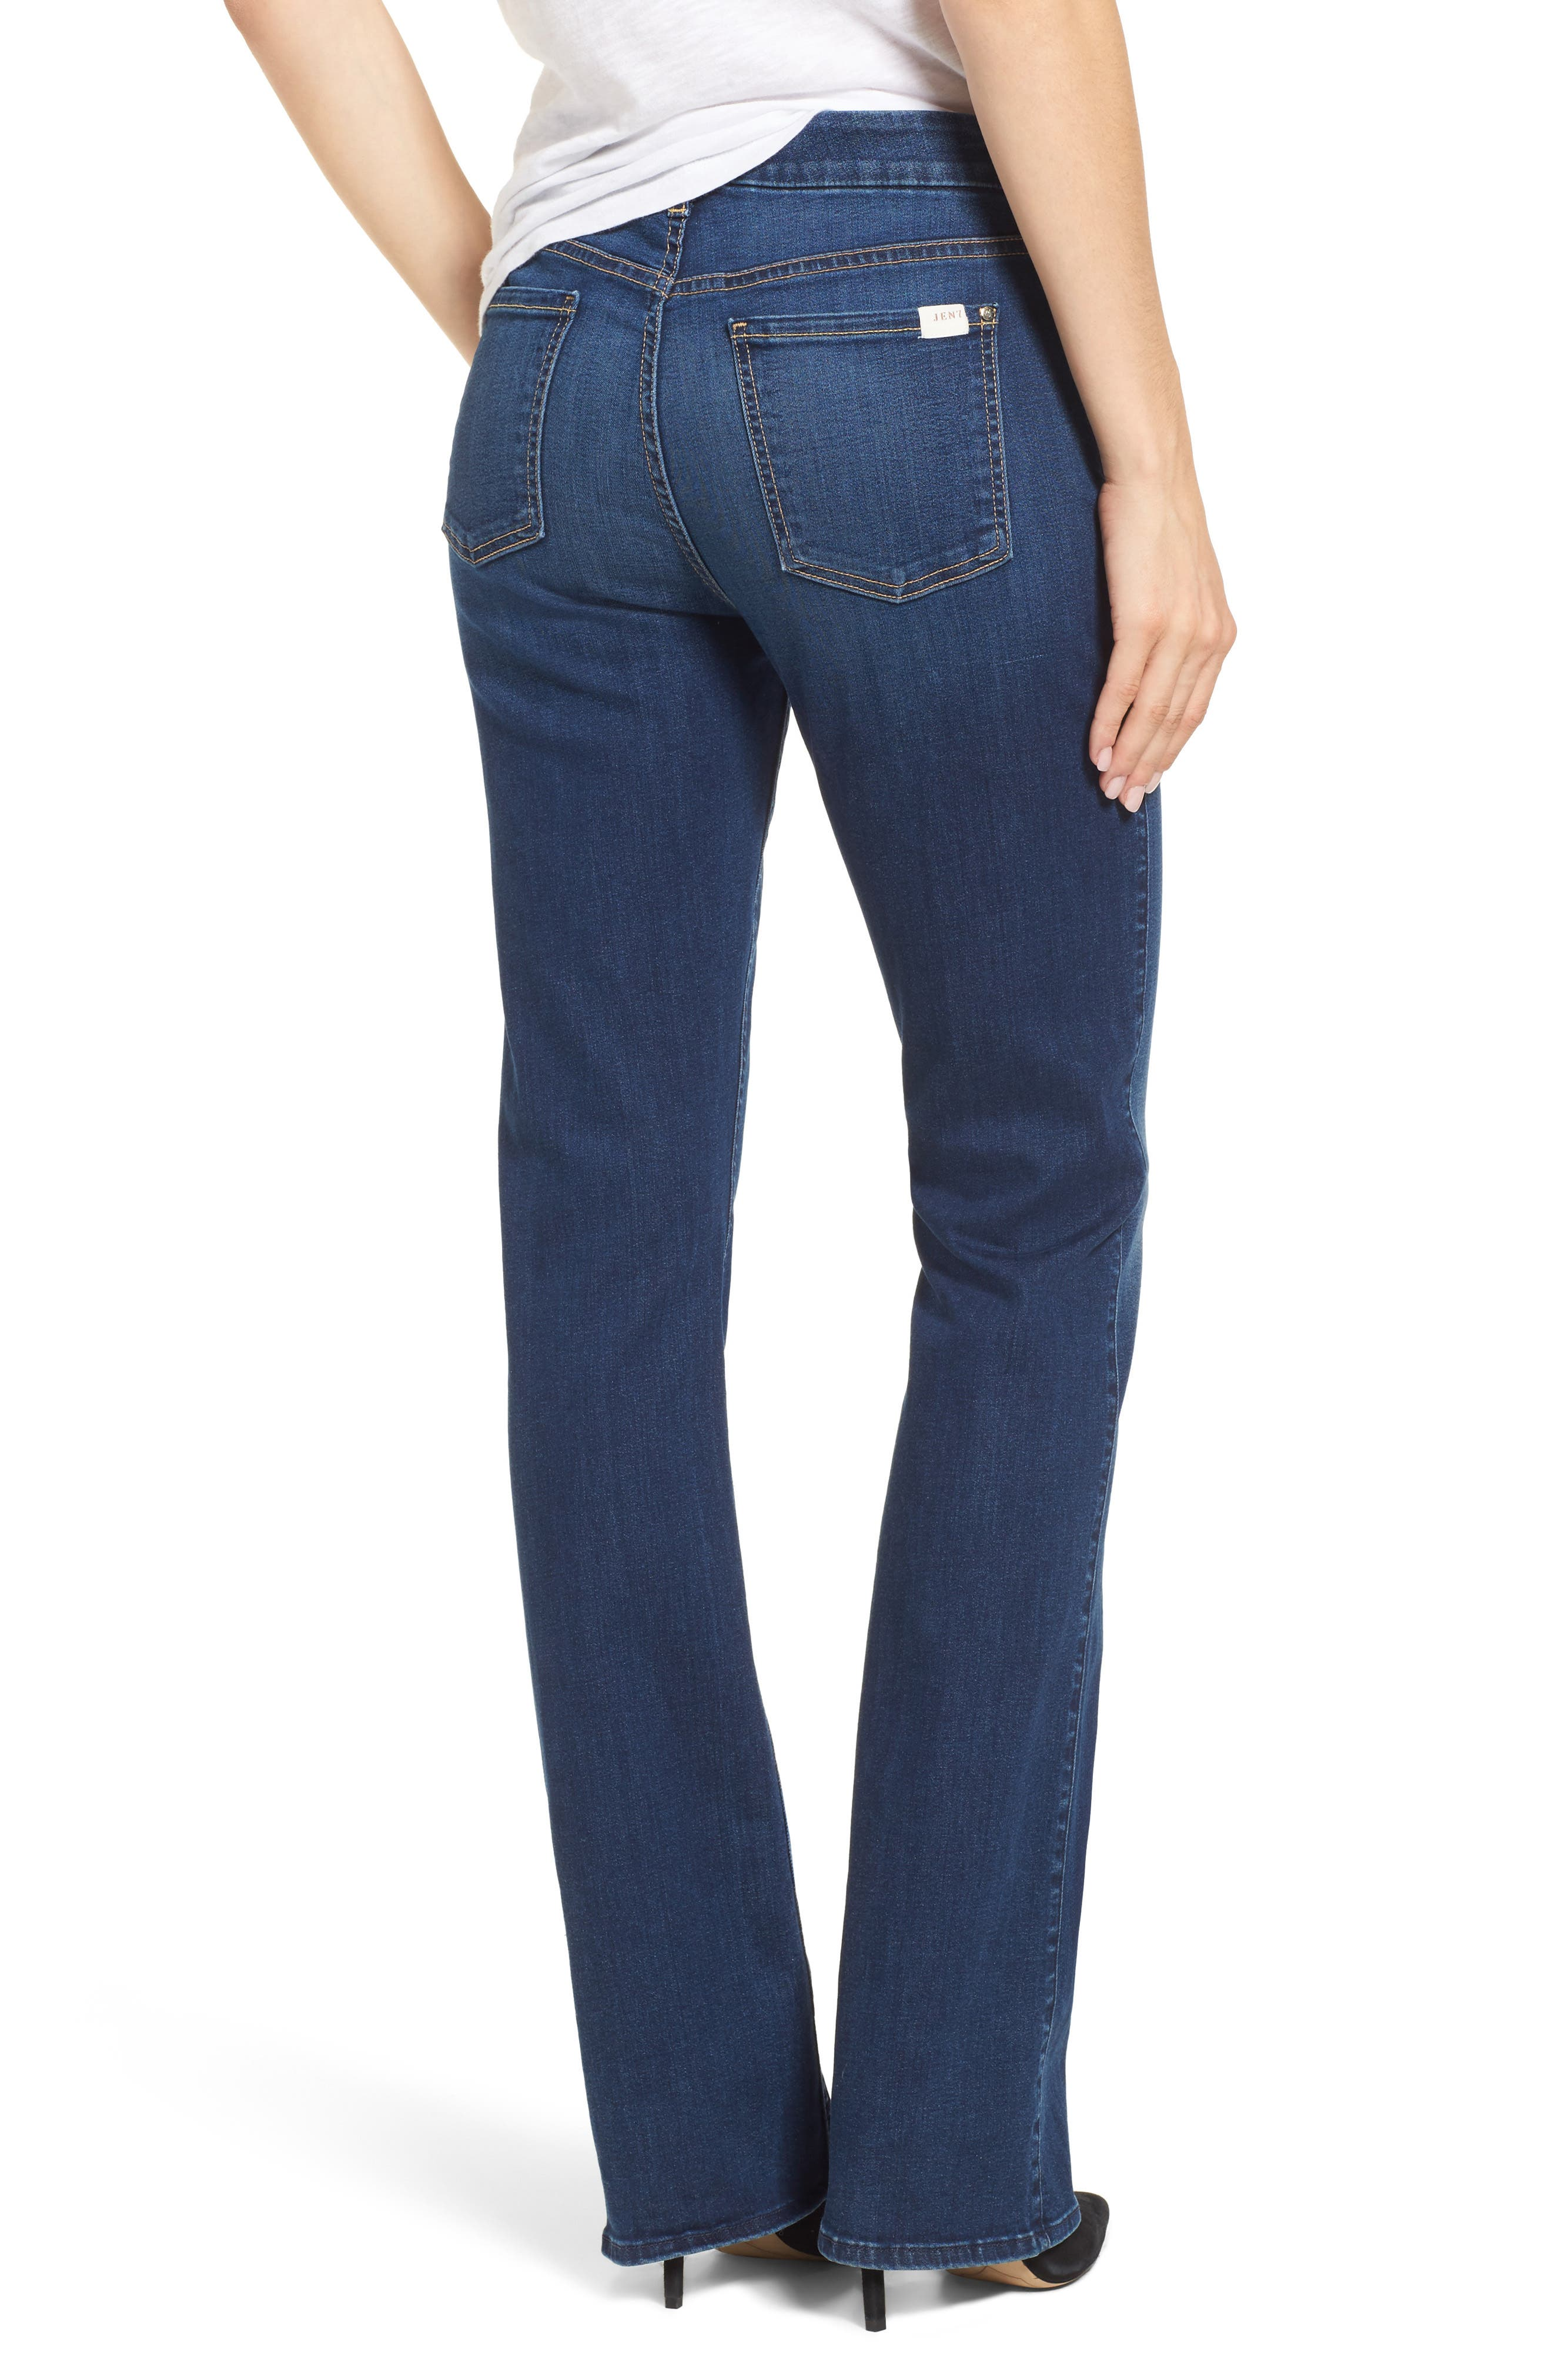 JEN7 BY 7 FOR ALL MANKIND, Slim Bootcut Jeans, Alternate thumbnail 2, color, RICHE TOUCH MEDIUM BLUE